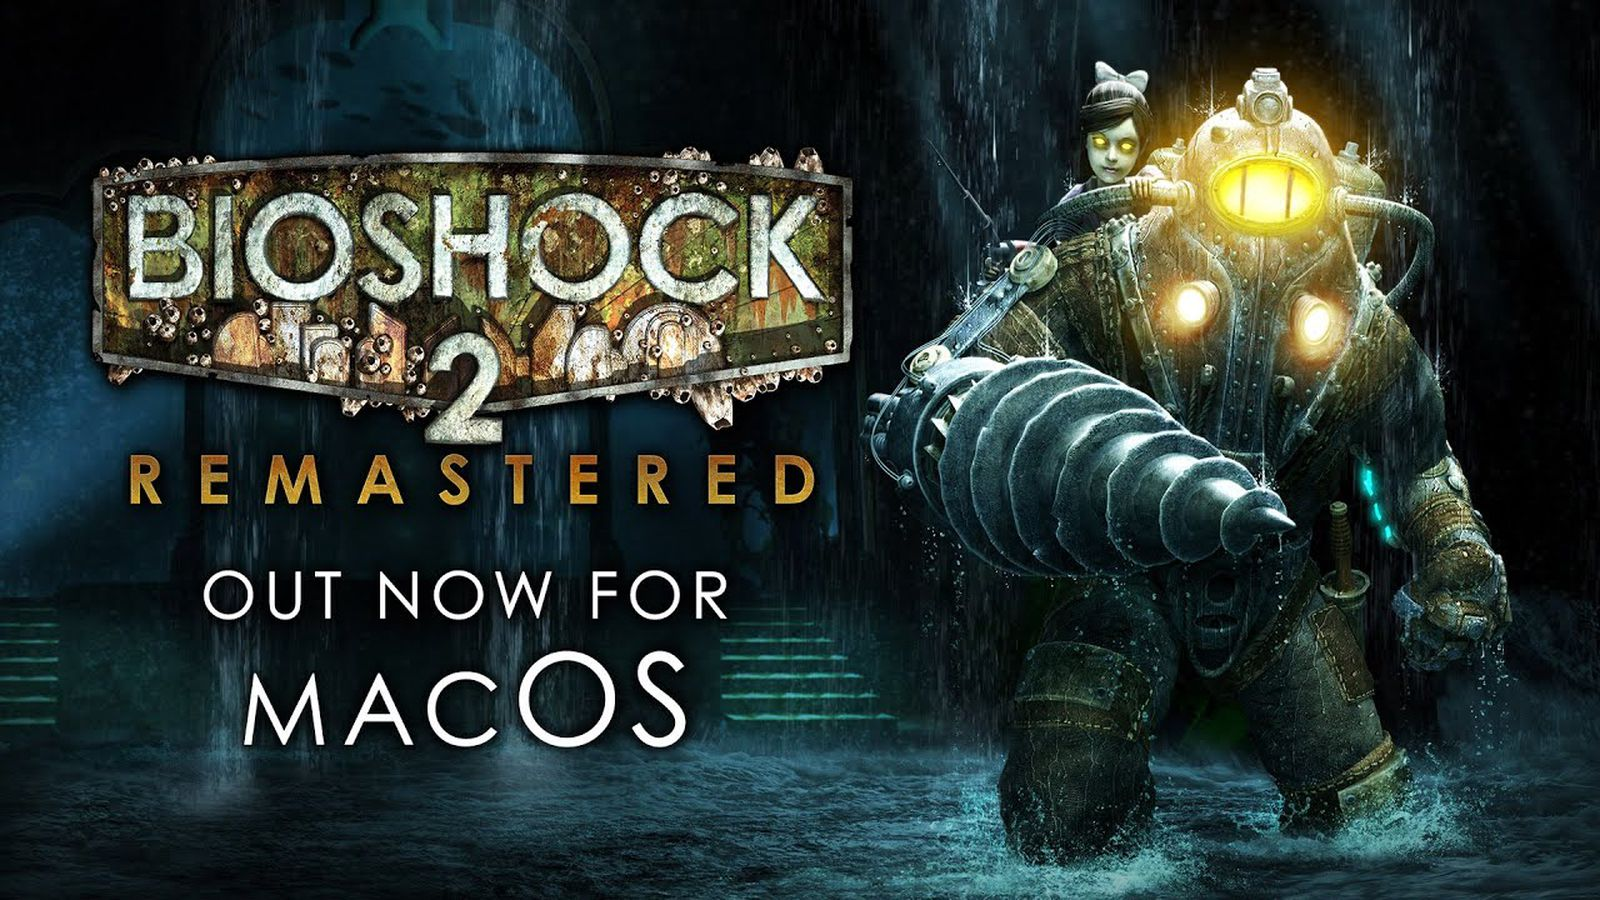 photo of 'Bioshock 2 Remastered' Launches on macOS image